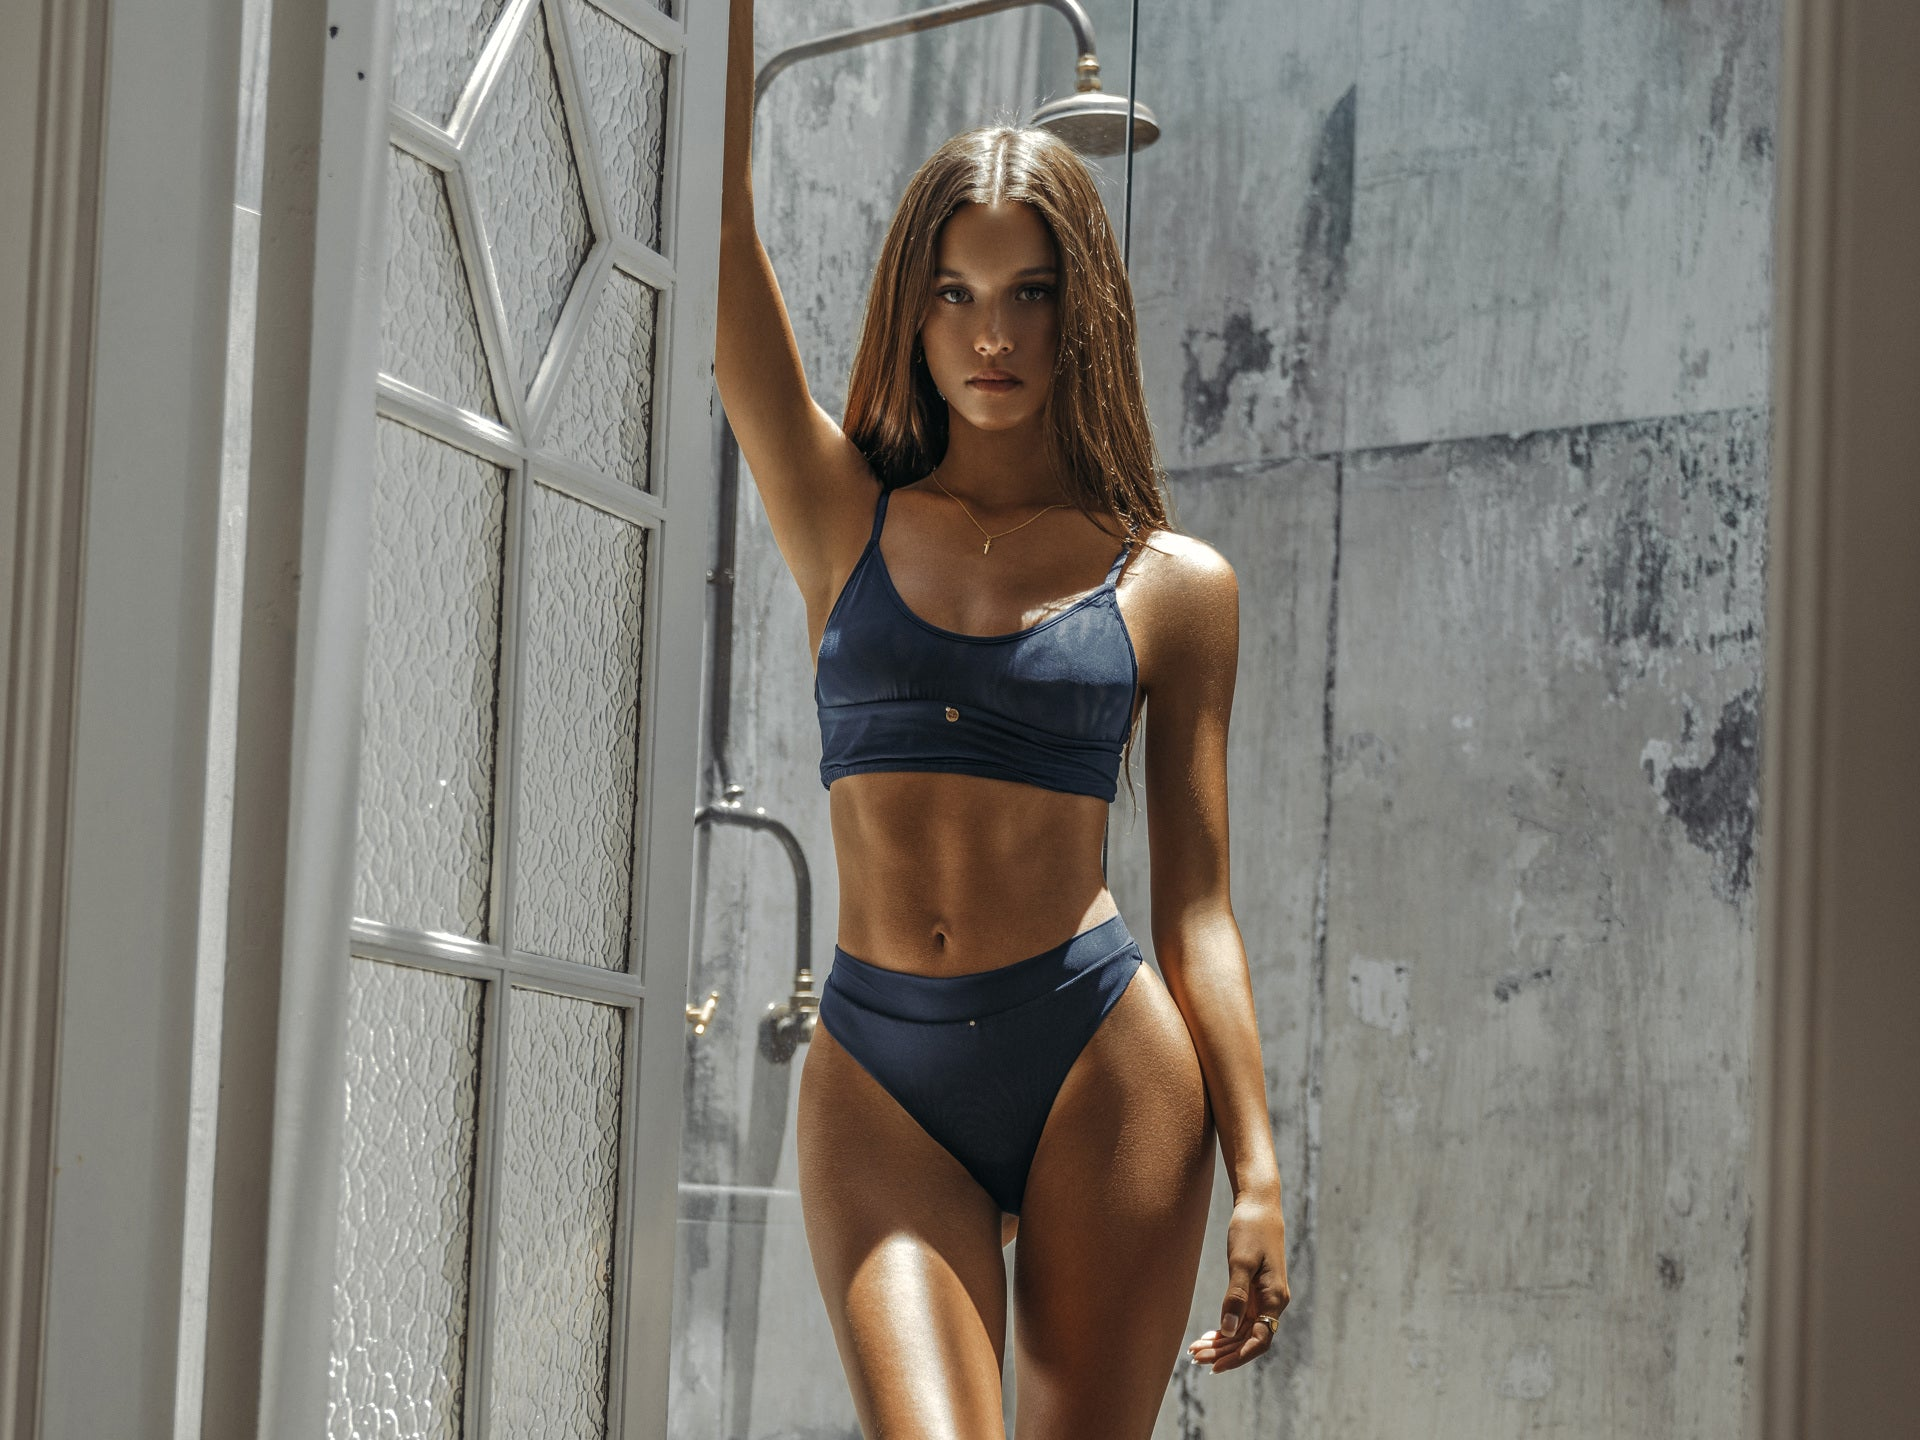 Isabelle Mathers wearing the For You Deep Blue Crop Set while in the shower